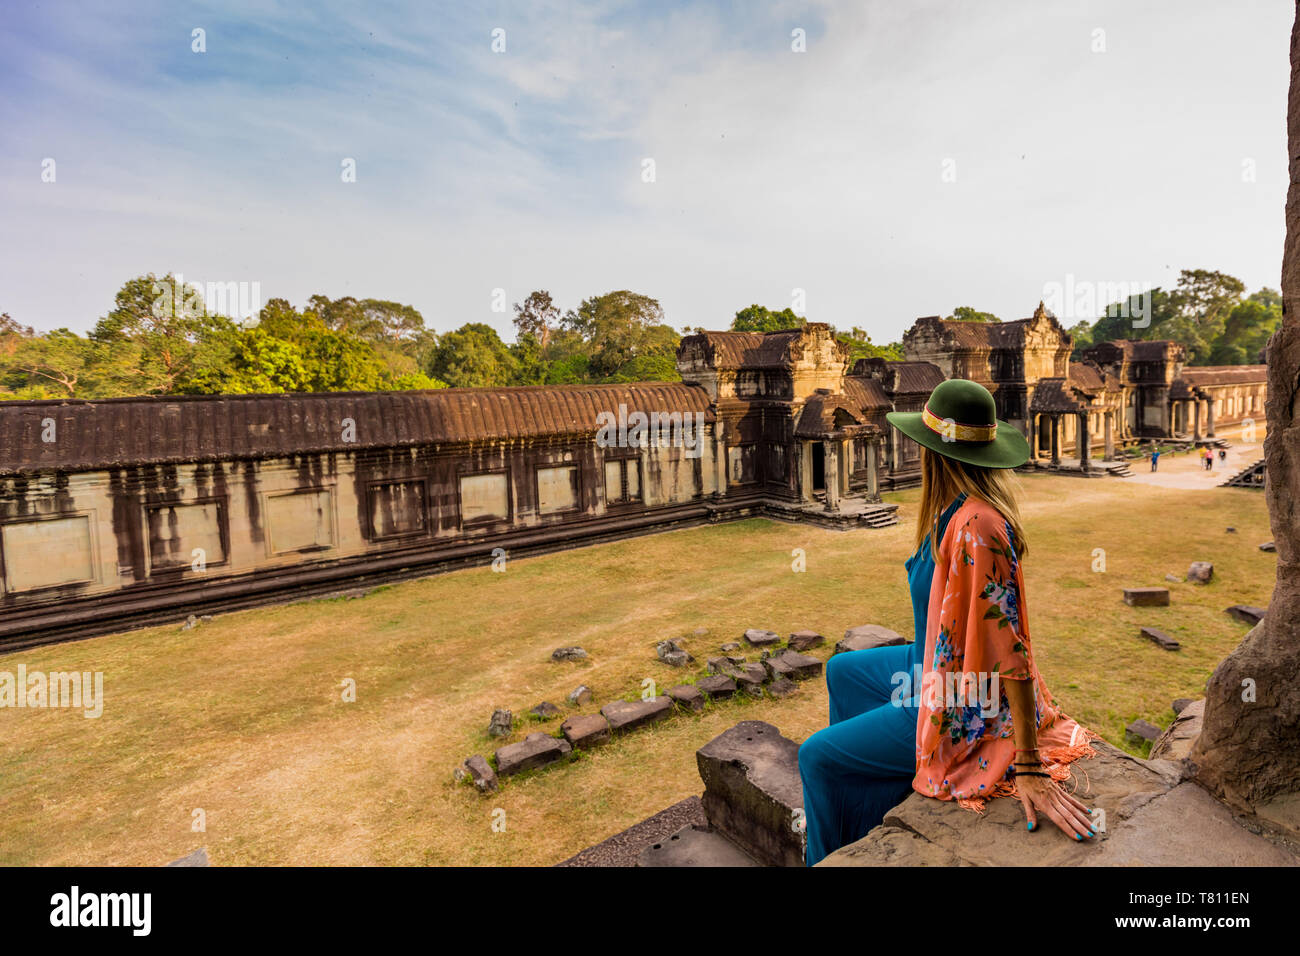 American woman tourist at Angkor Wat temples, Angkor, UNESCO World Heritage Site, Siem Reap, Cambodia, Indochina, Southeast Asia, Asia - Stock Image